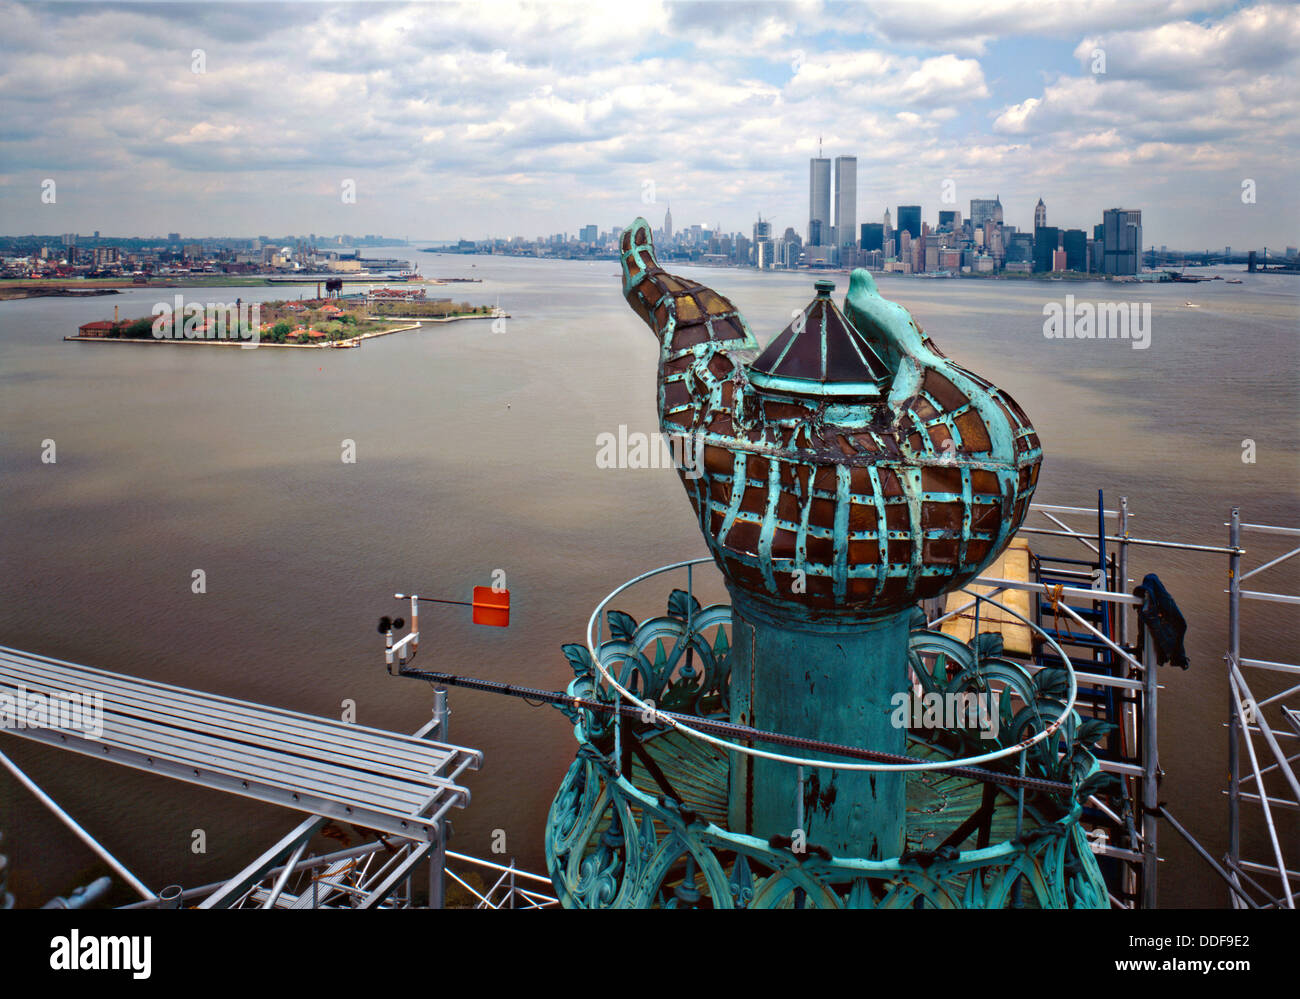 Inside Tour Of Statue Of Liberty